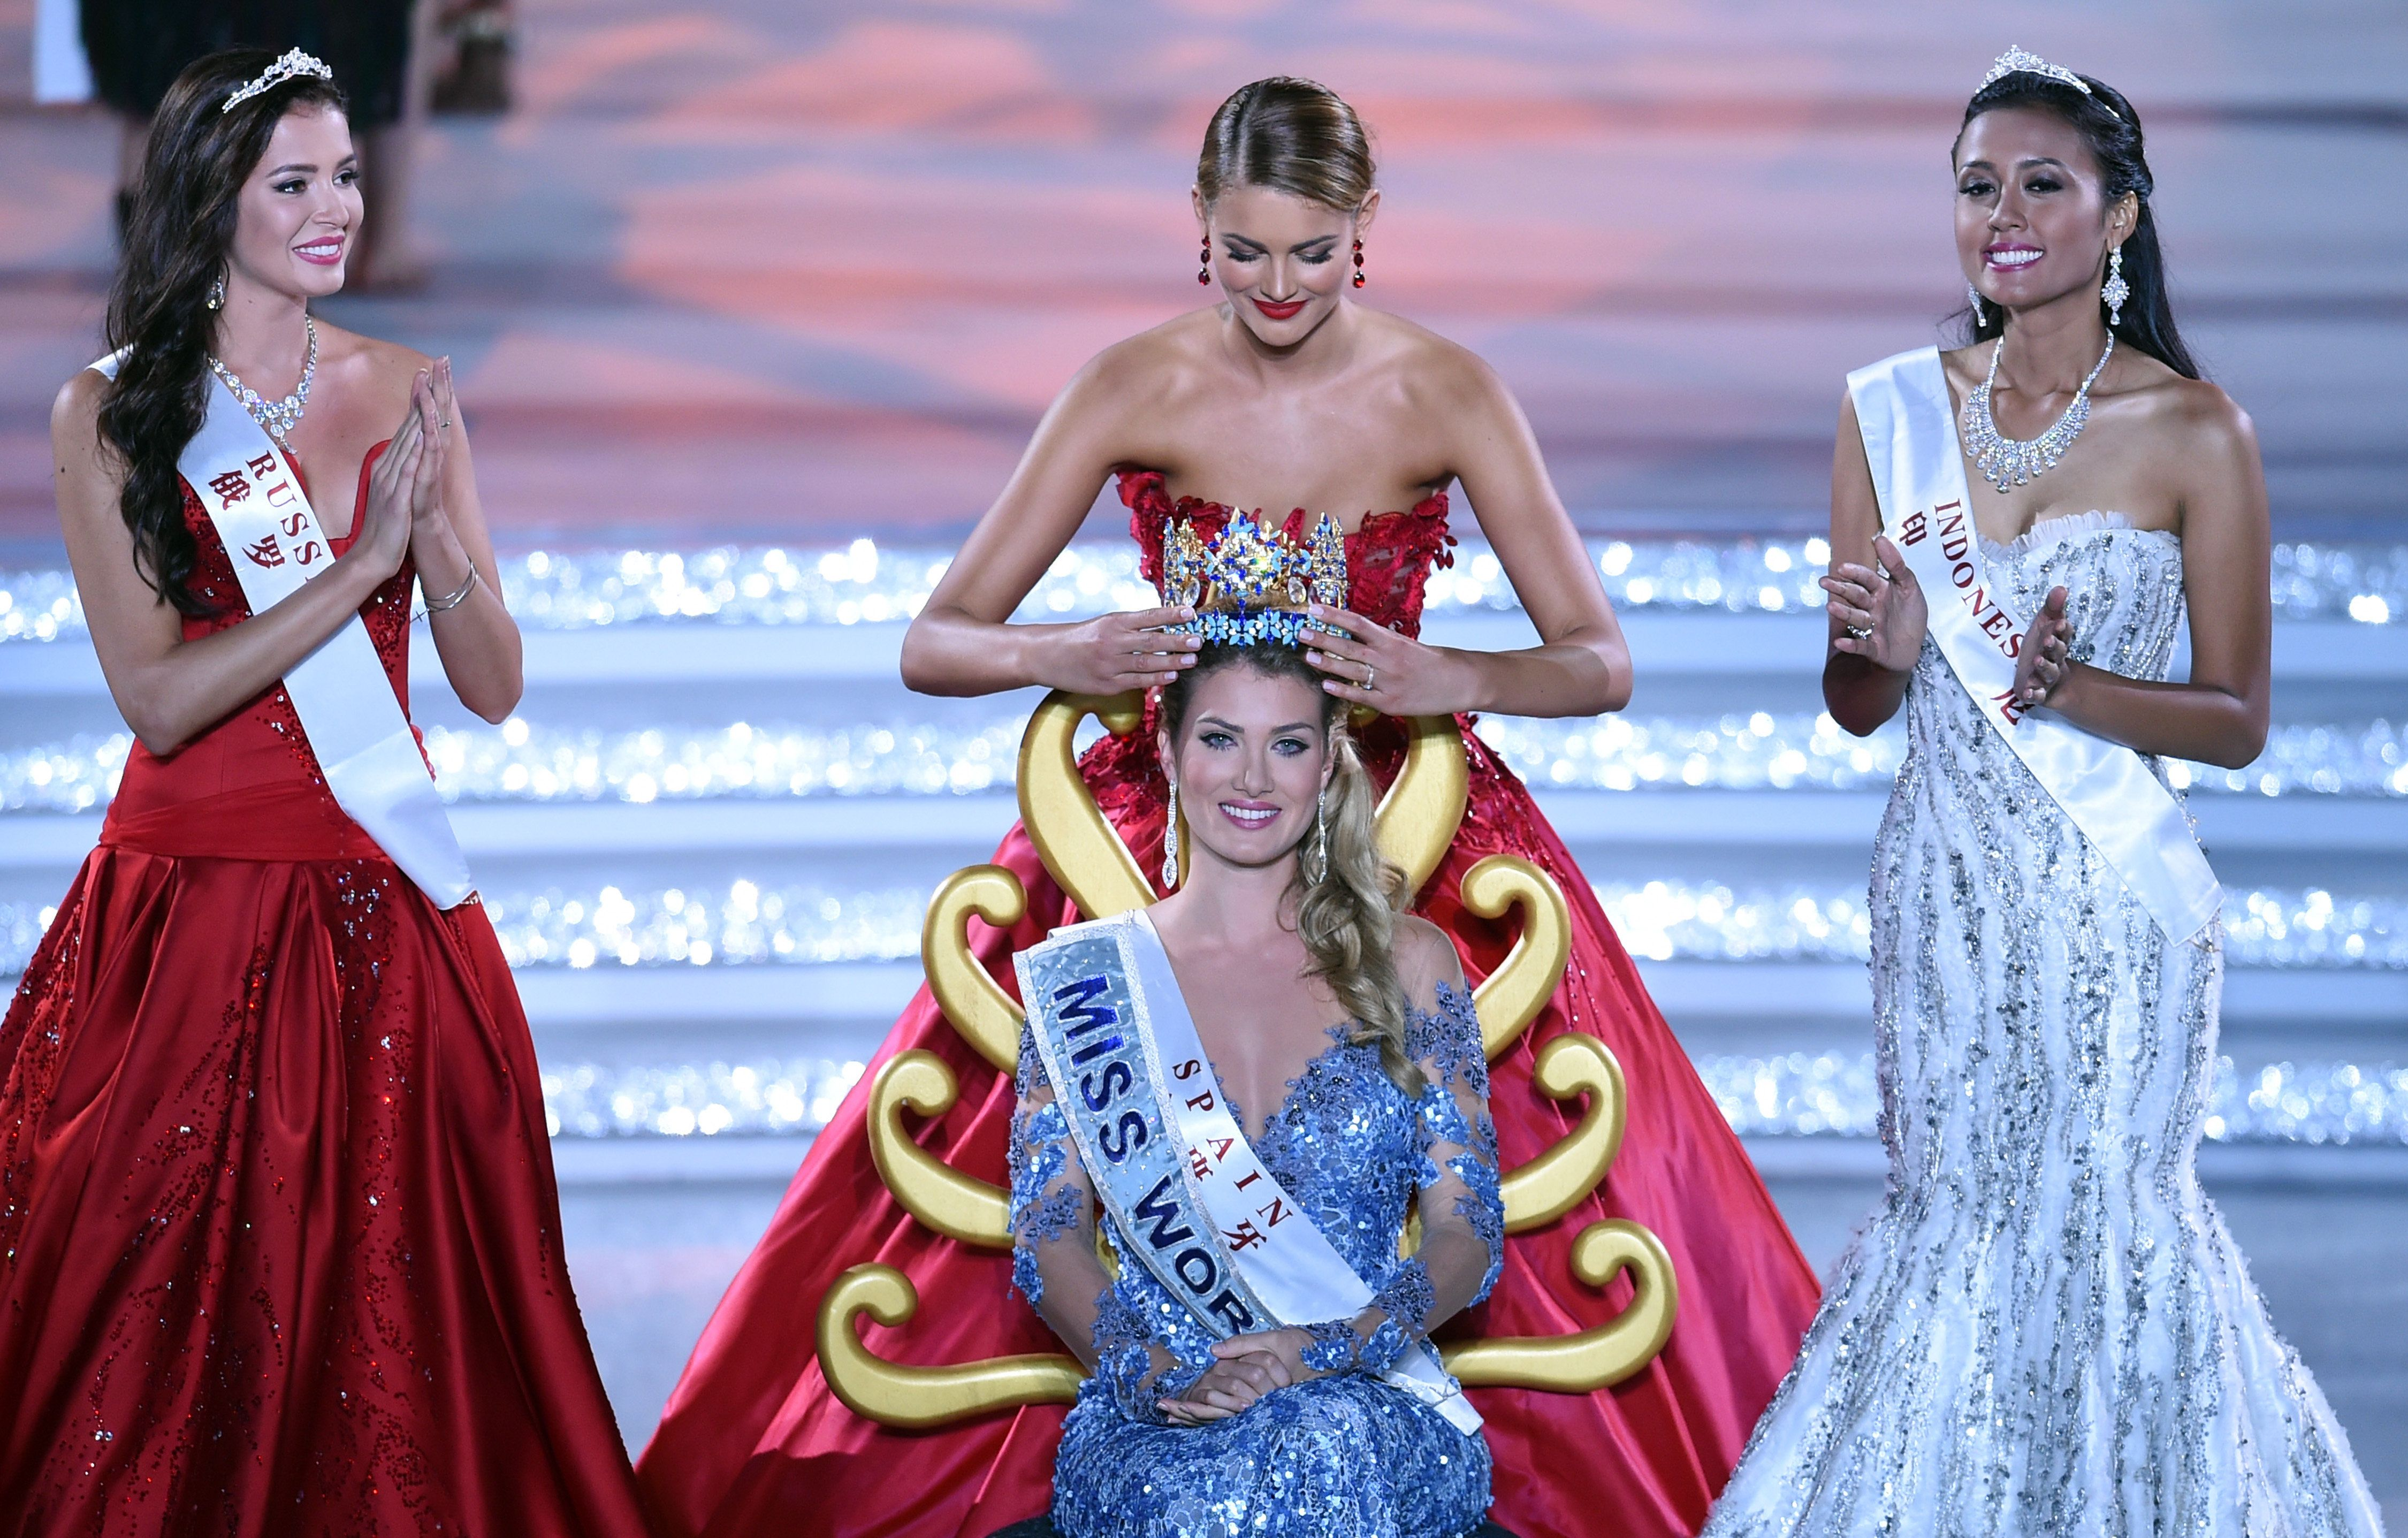 Mireia Lalaguna Rozo of Spain is crowned by former Miss World Rolene Strauss after winning the new title at the Miss World Gr